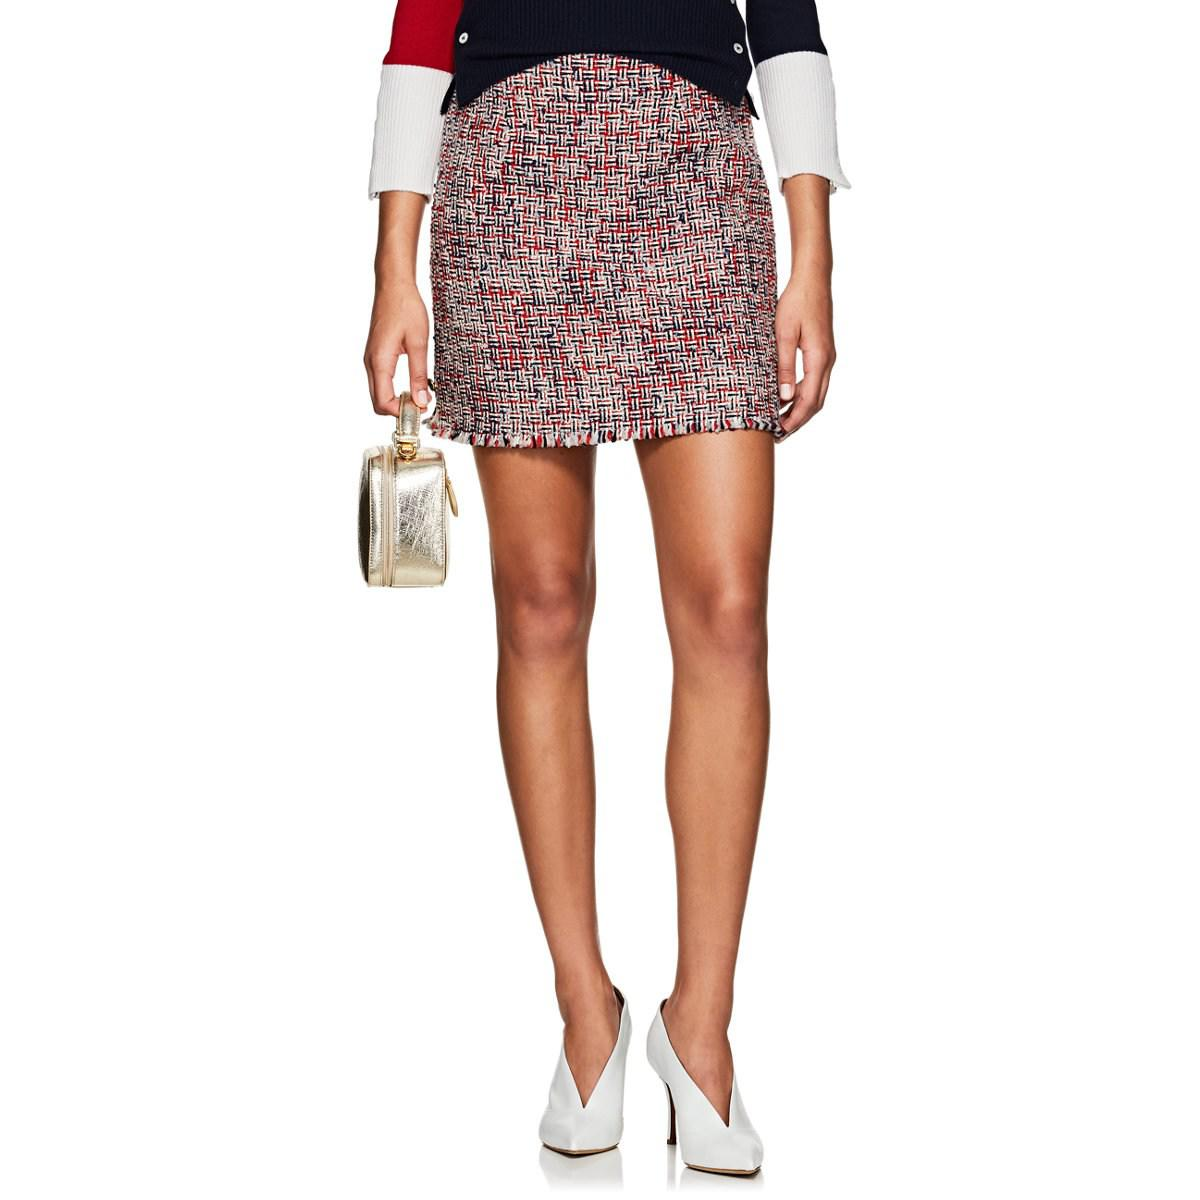 213ad10ce3a Thom Browne Wool-blend Tweed Miniskirt in Red - Lyst